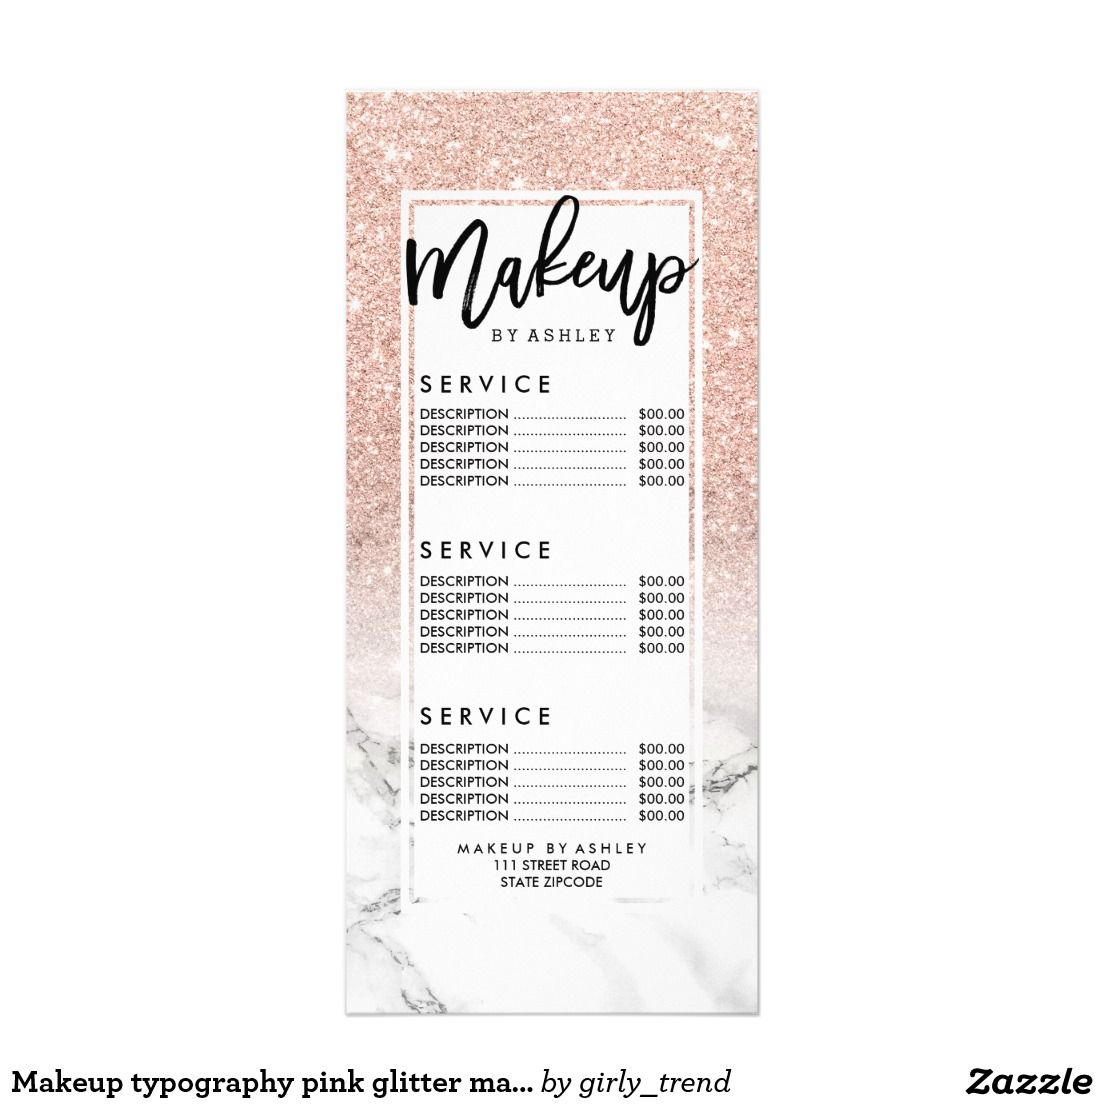 Makeup typography pink glitter marble price list rack card ...